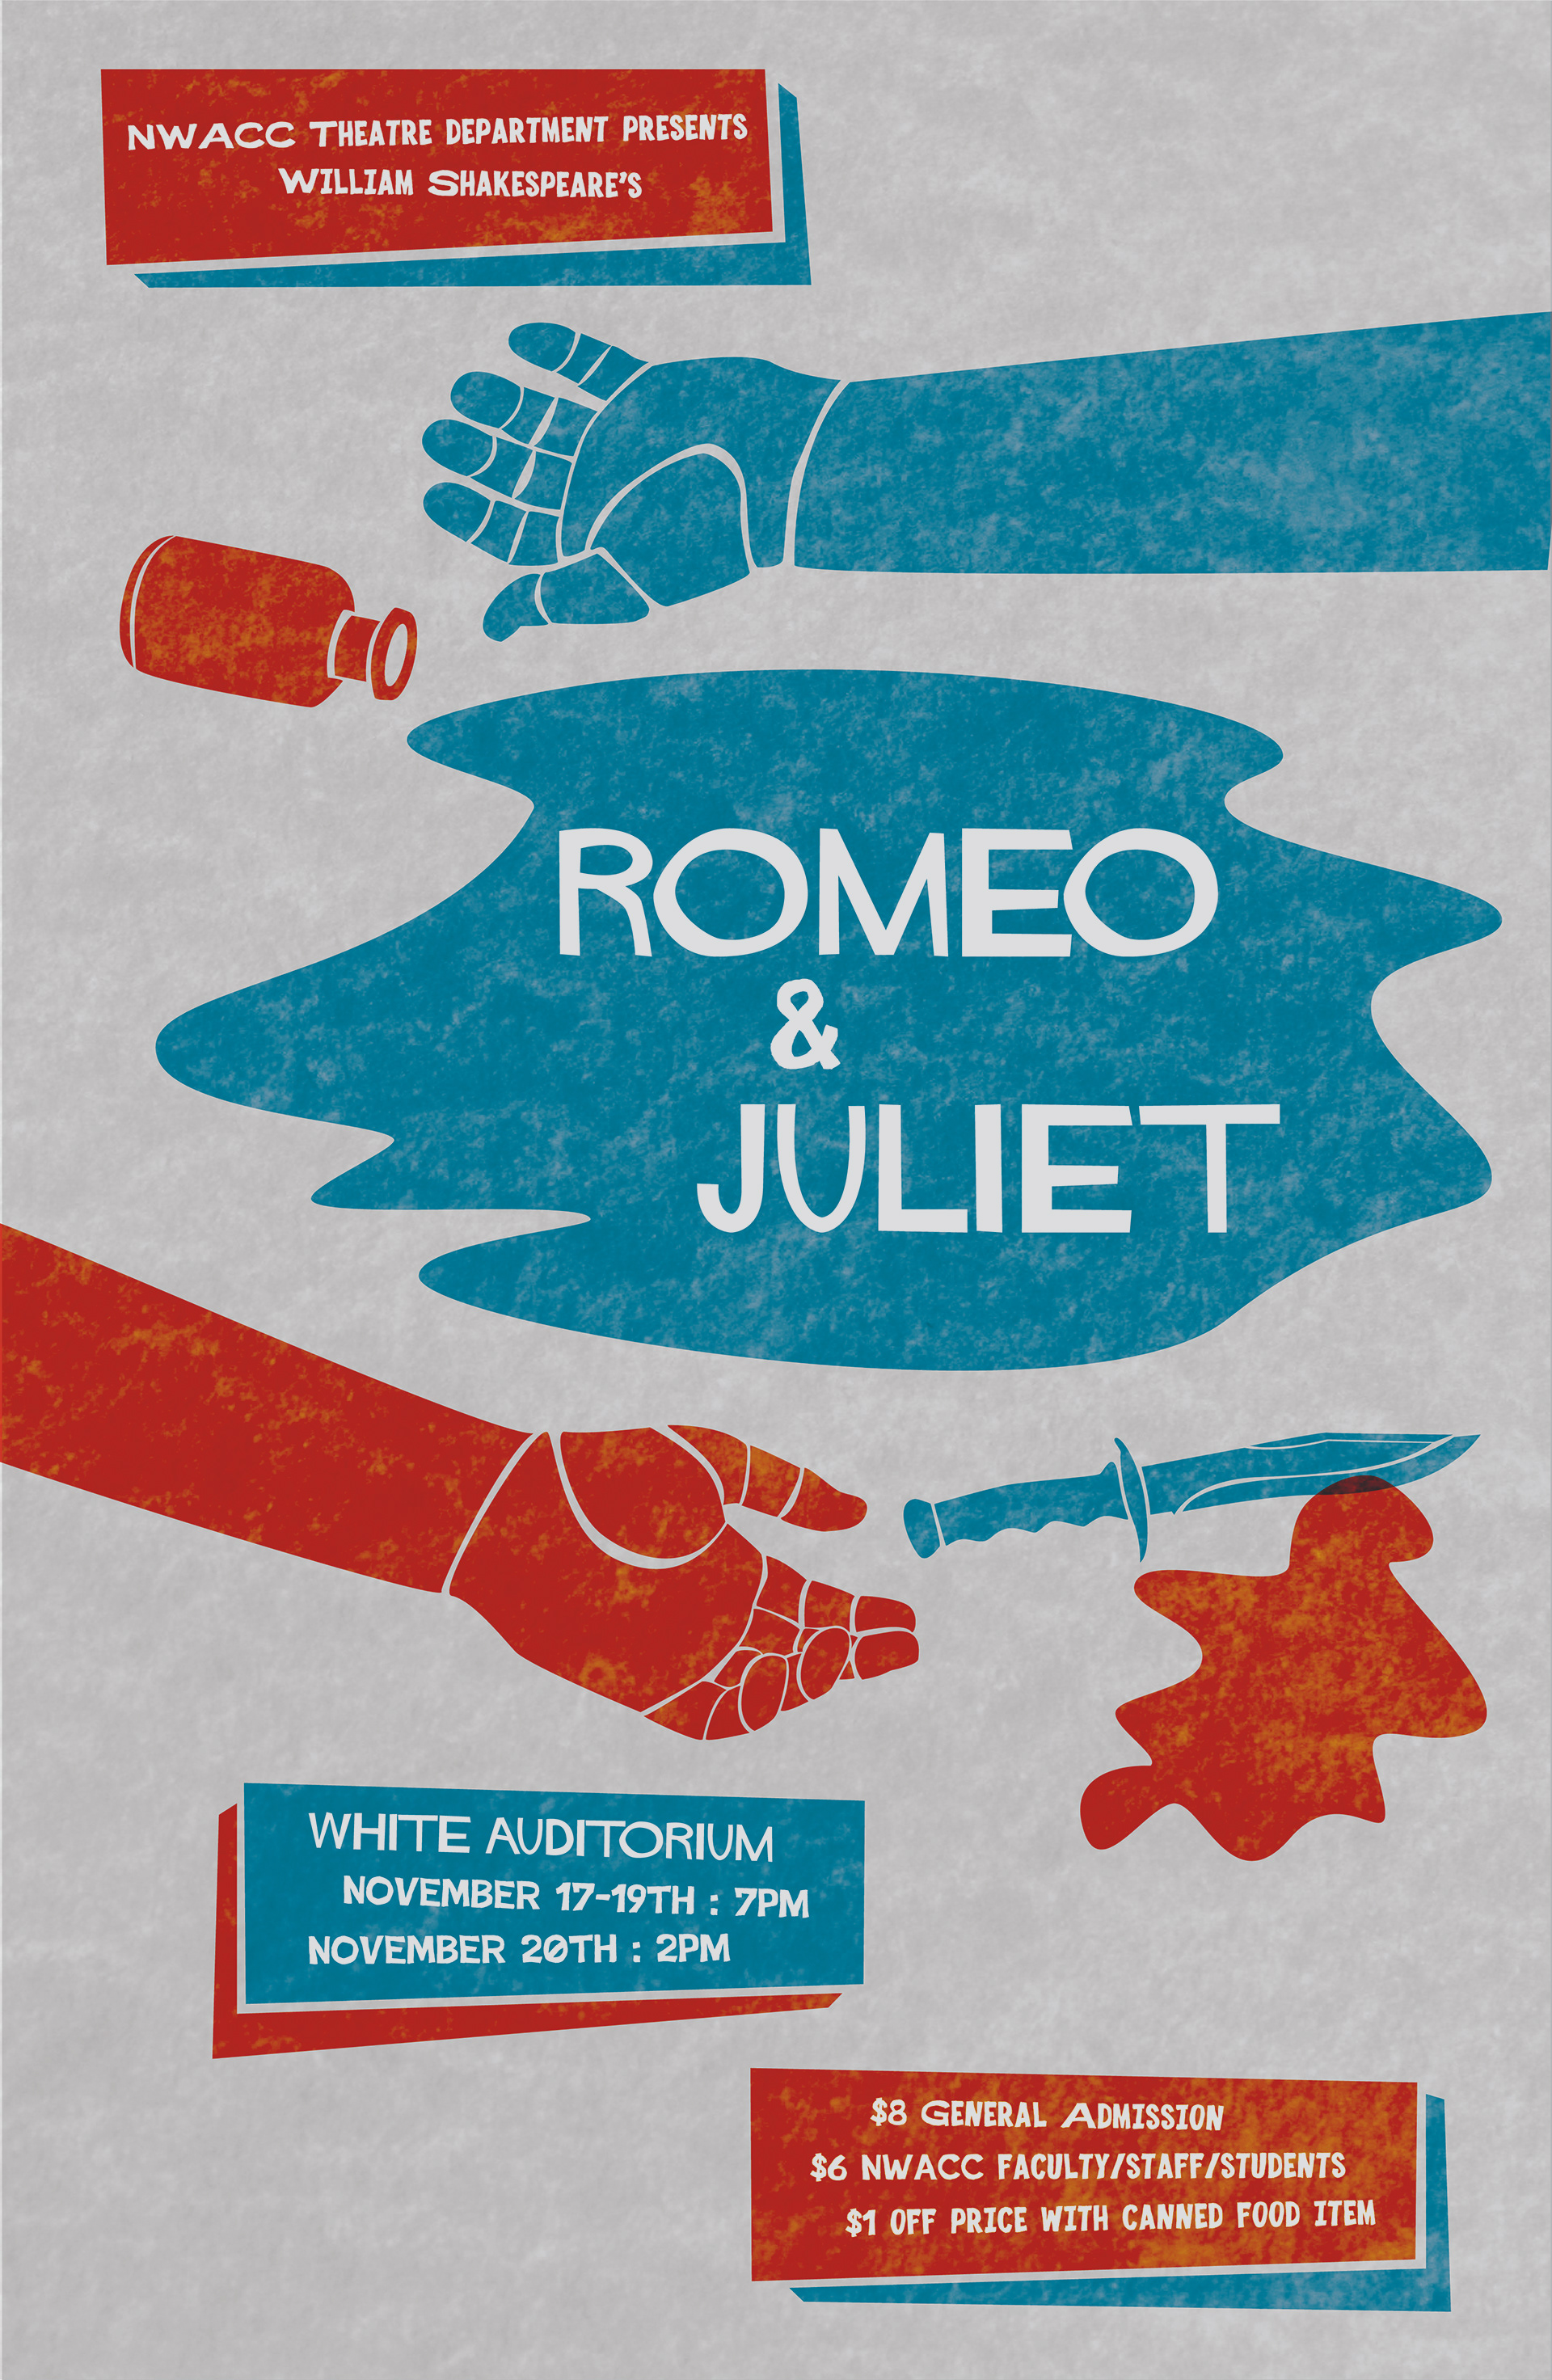 I Was Asked To Design A Poster For Theater Production Of Romeo And Juliet This Piece Inspired By The Amazing Work Saul Bass